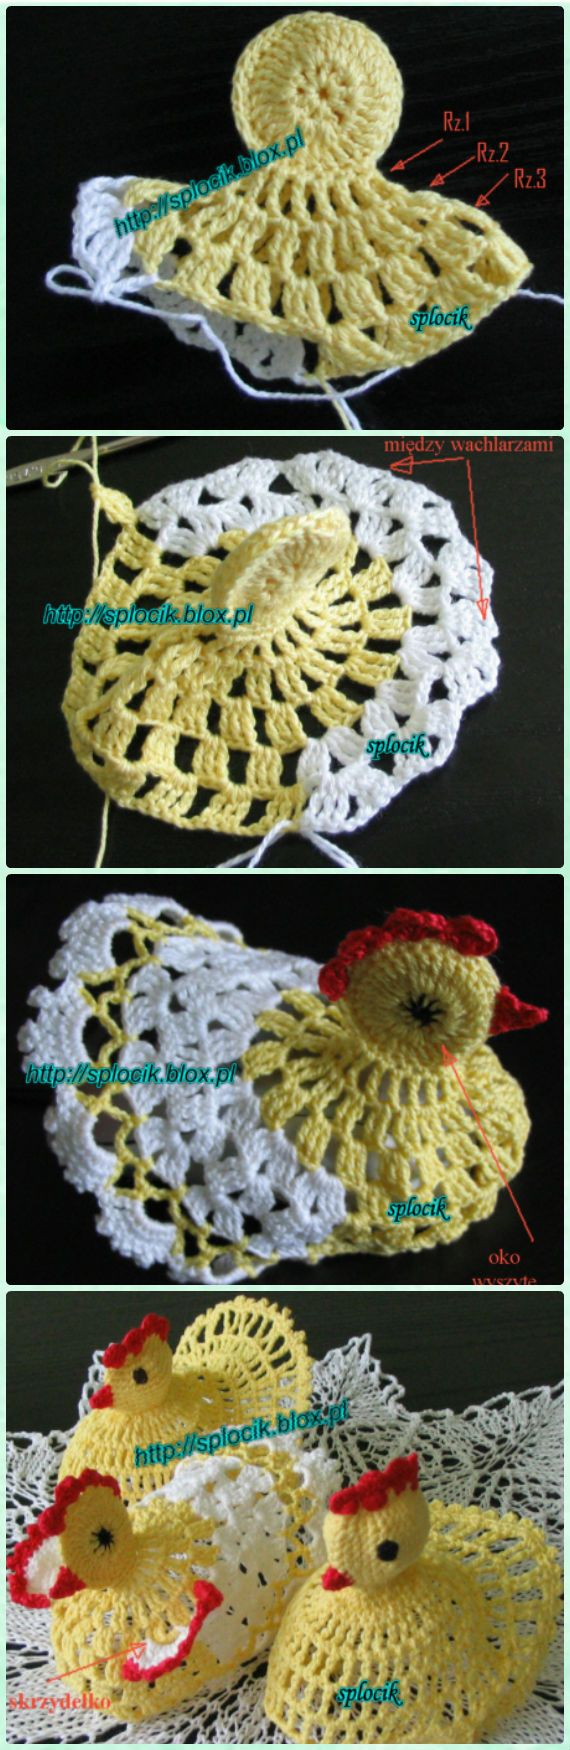 Crochet Standing Easter Chick Free Pattern - Crochet Chicken Free Patterns